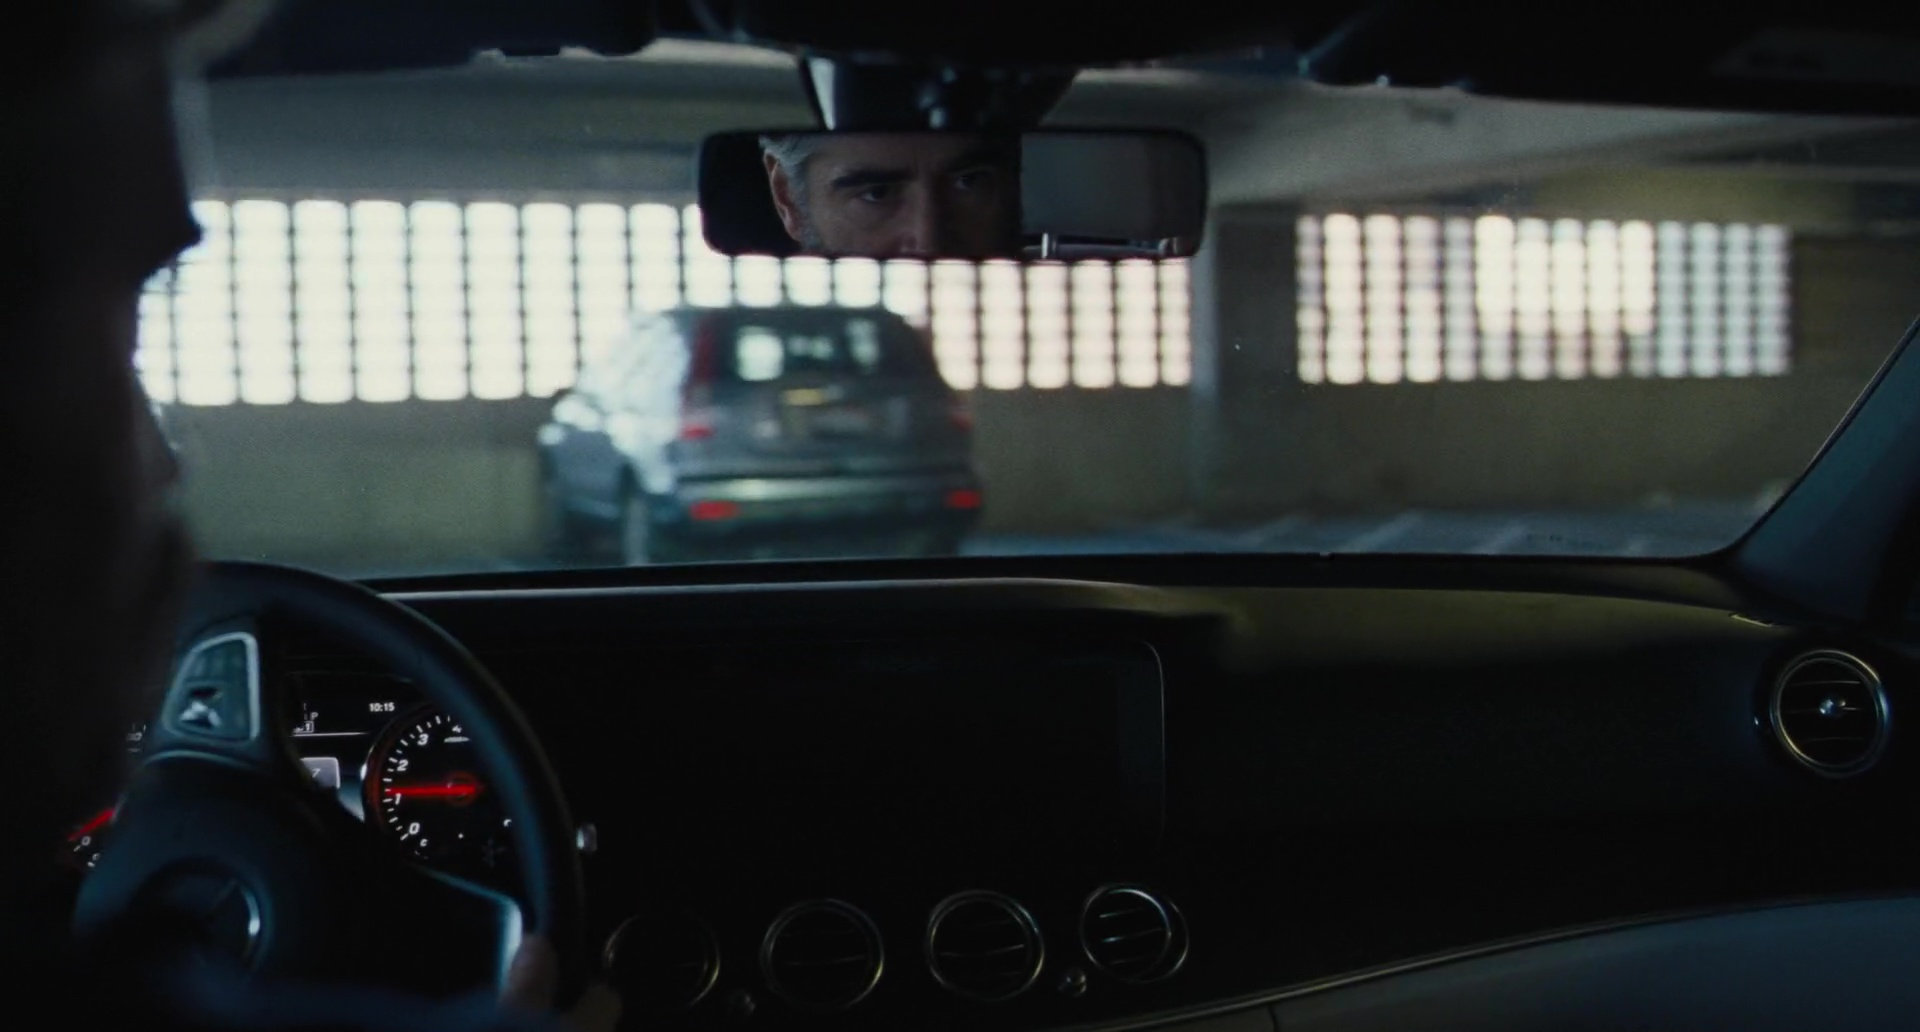 Mercedes Benz E Class Car Used By Colin Farrell In The